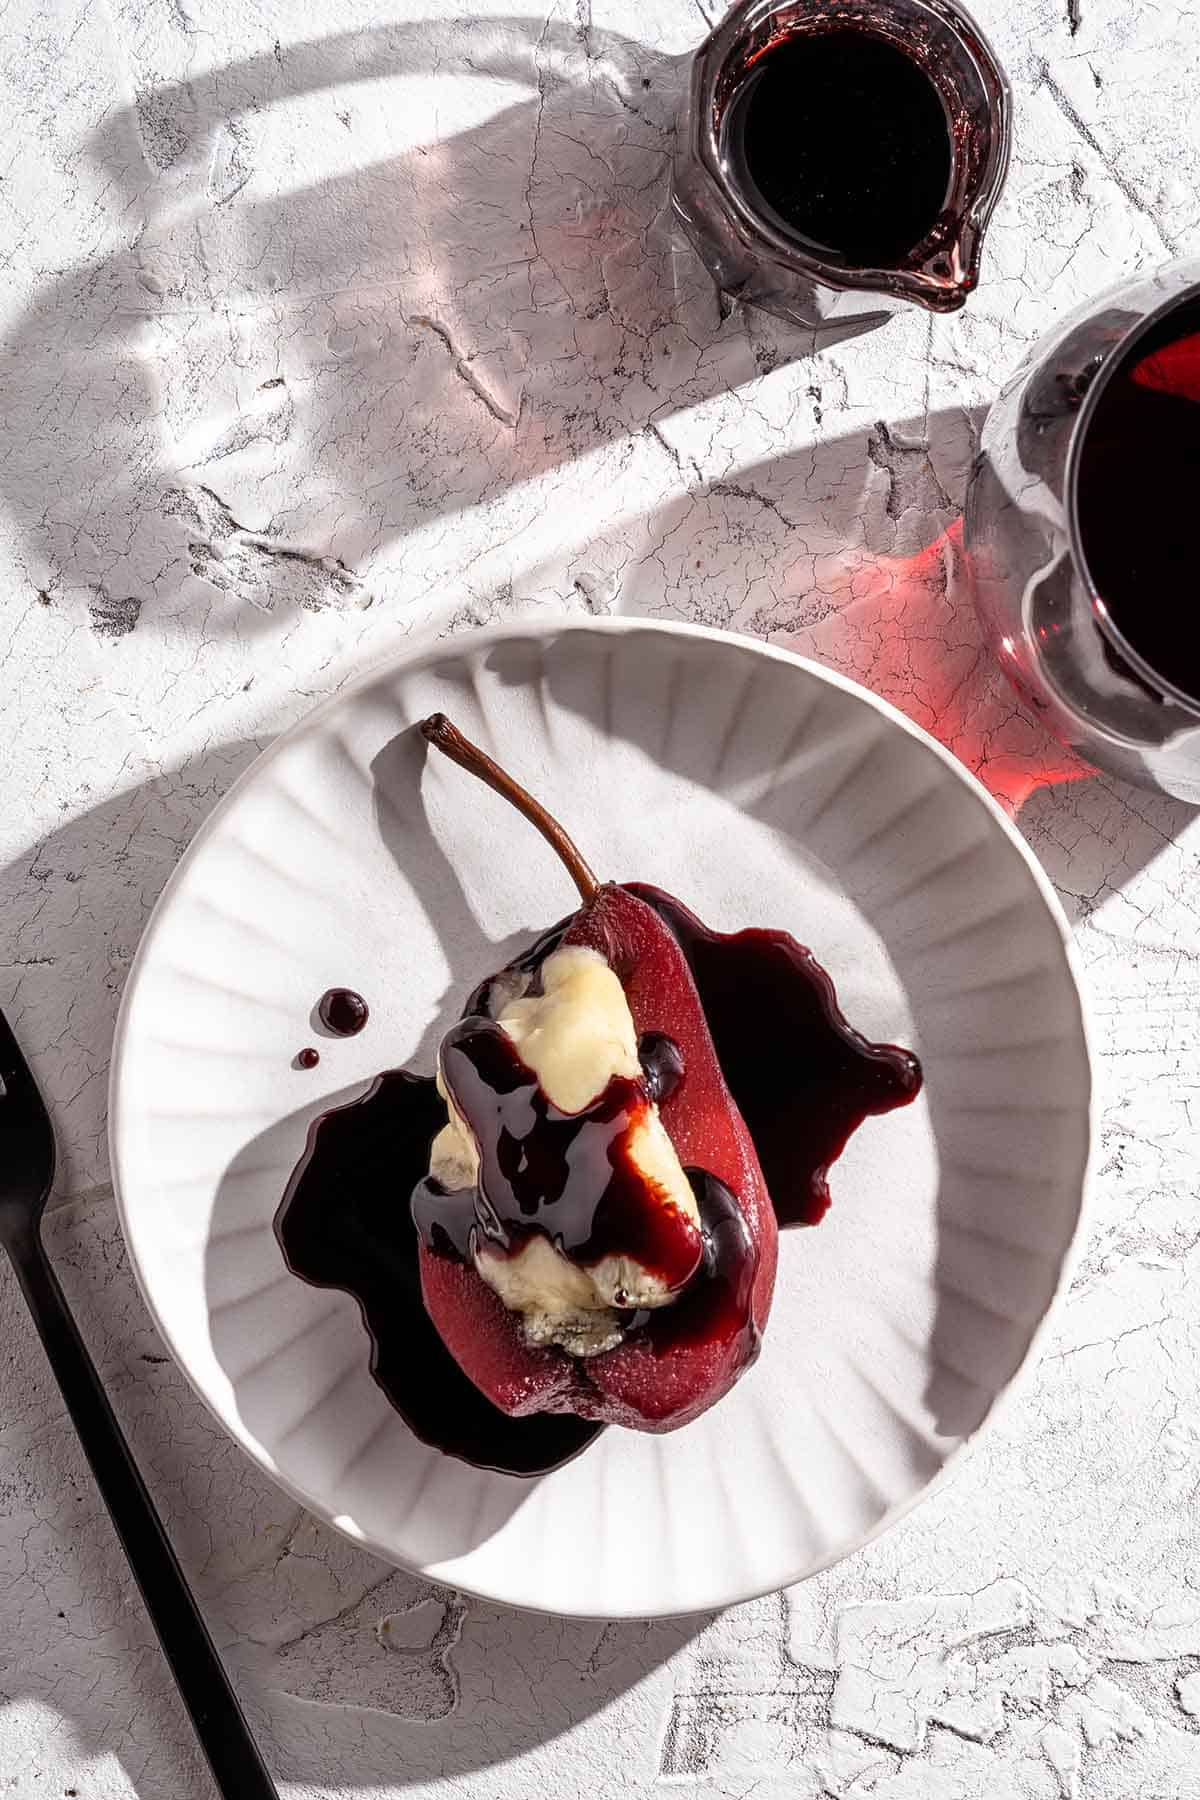 Poached Pear on Plate with wine on the side